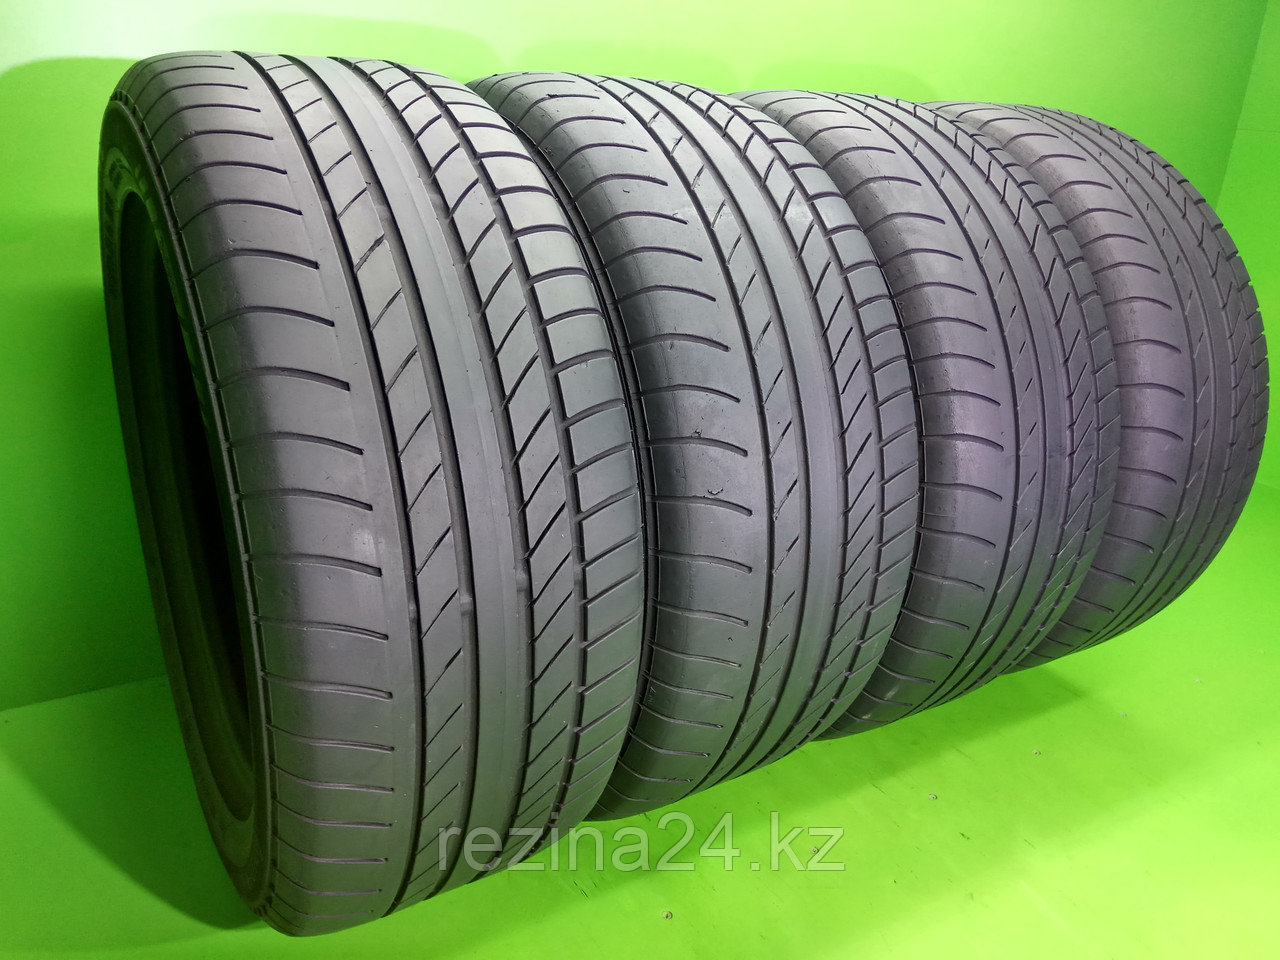 225/50 R 16 (92W) CONTINENTAL Conti Sport Contact летние б/у шины